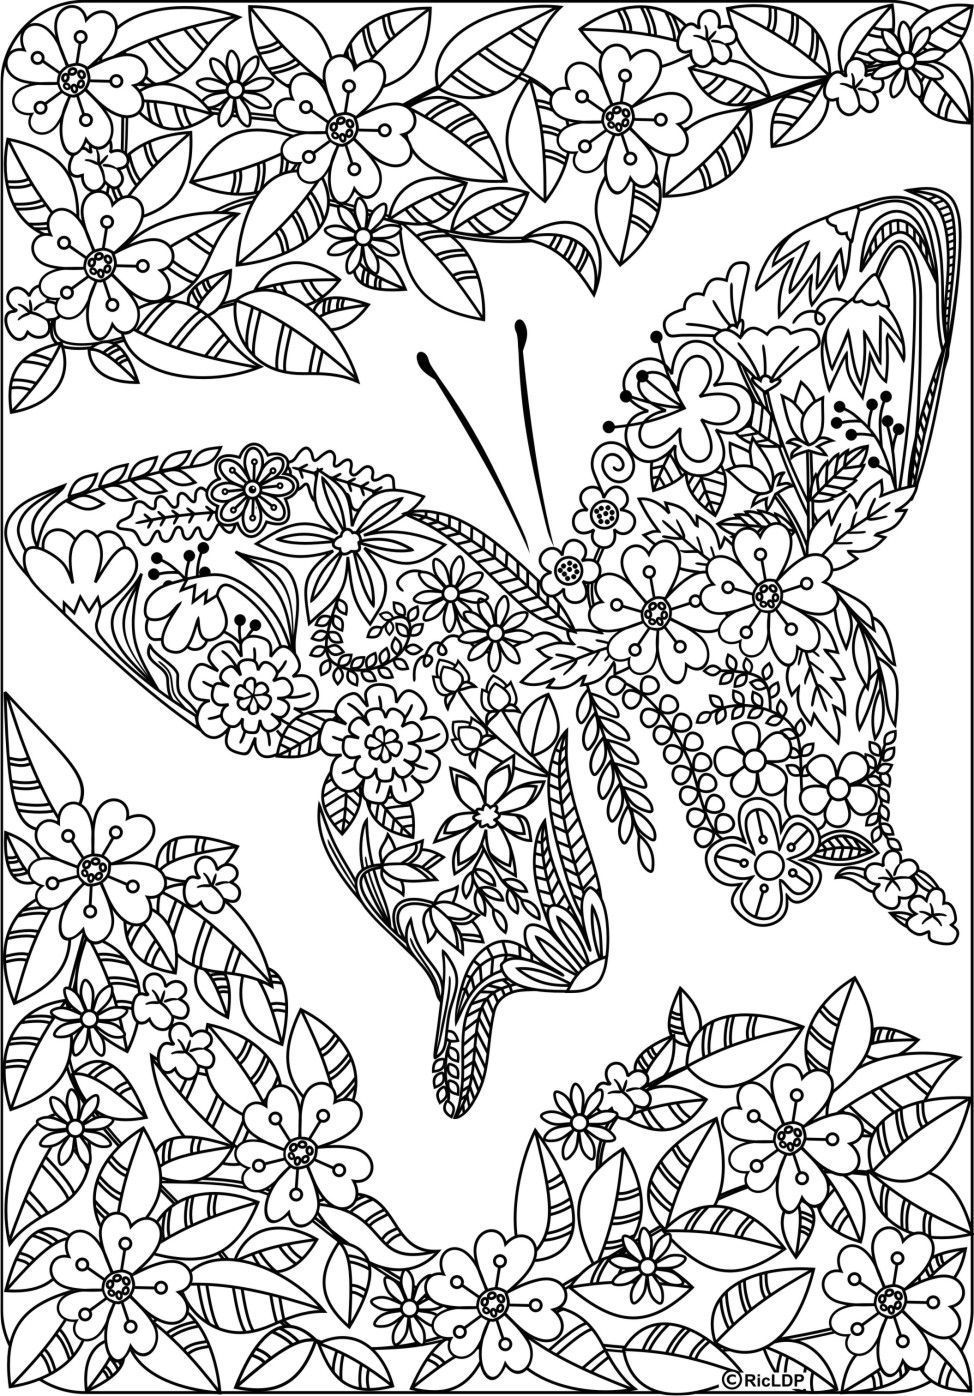 Paisley Design Printmaking Christmas Coloring Pages Flower Coloring Pages Coloring In 2020 Coloring Pages For Grown Ups Mandala Coloring Pages Butterfly Coloring Page